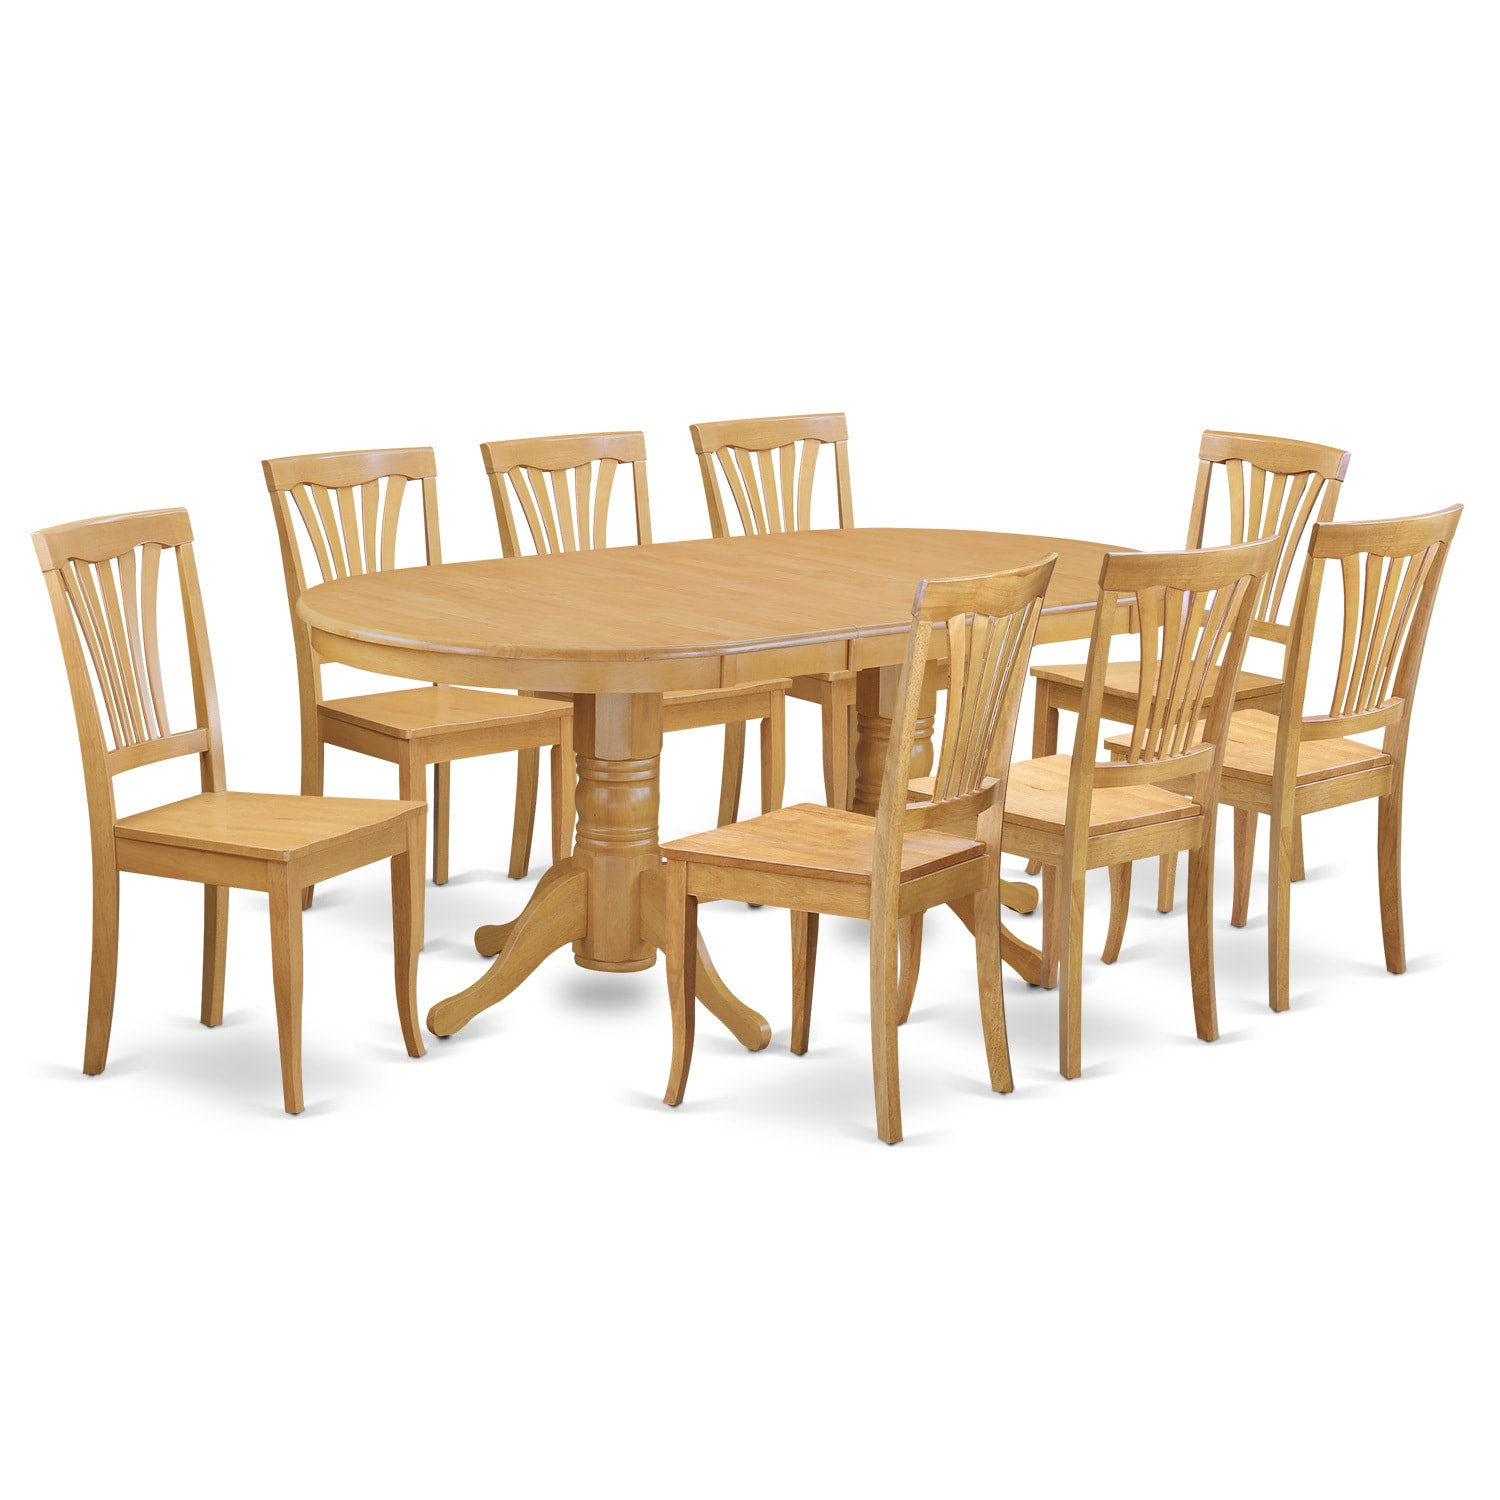 Vaav9 oak oak finish rubberwood dining table with leaf and 8 chairs